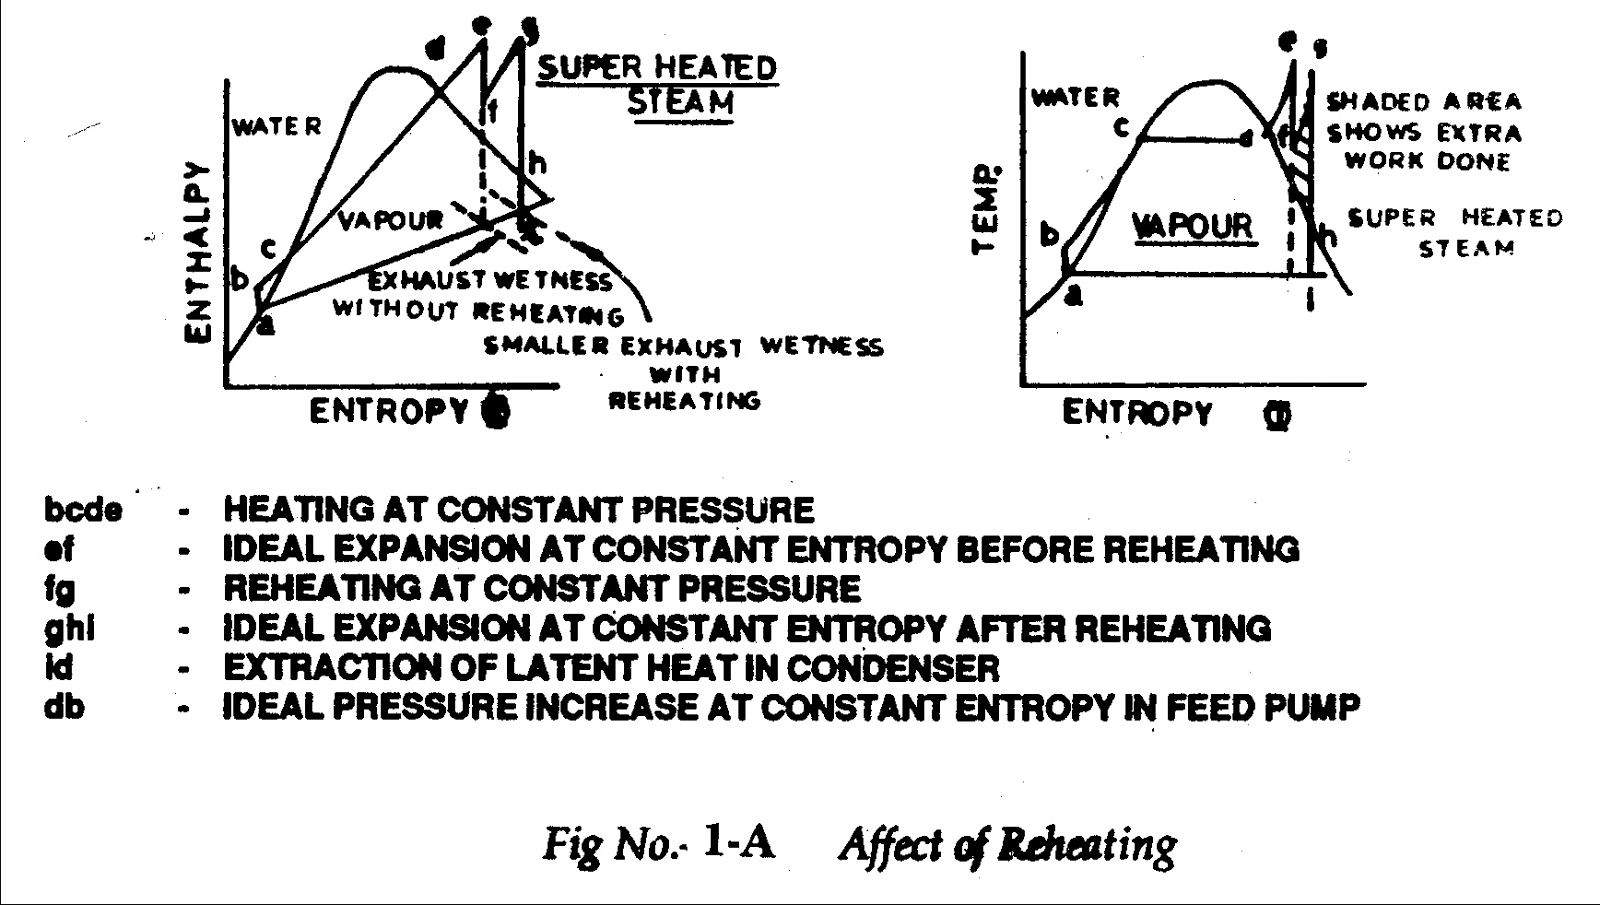 medium resolution of heating and reheating of steam figure 1a shows this cycle and is self explanatory